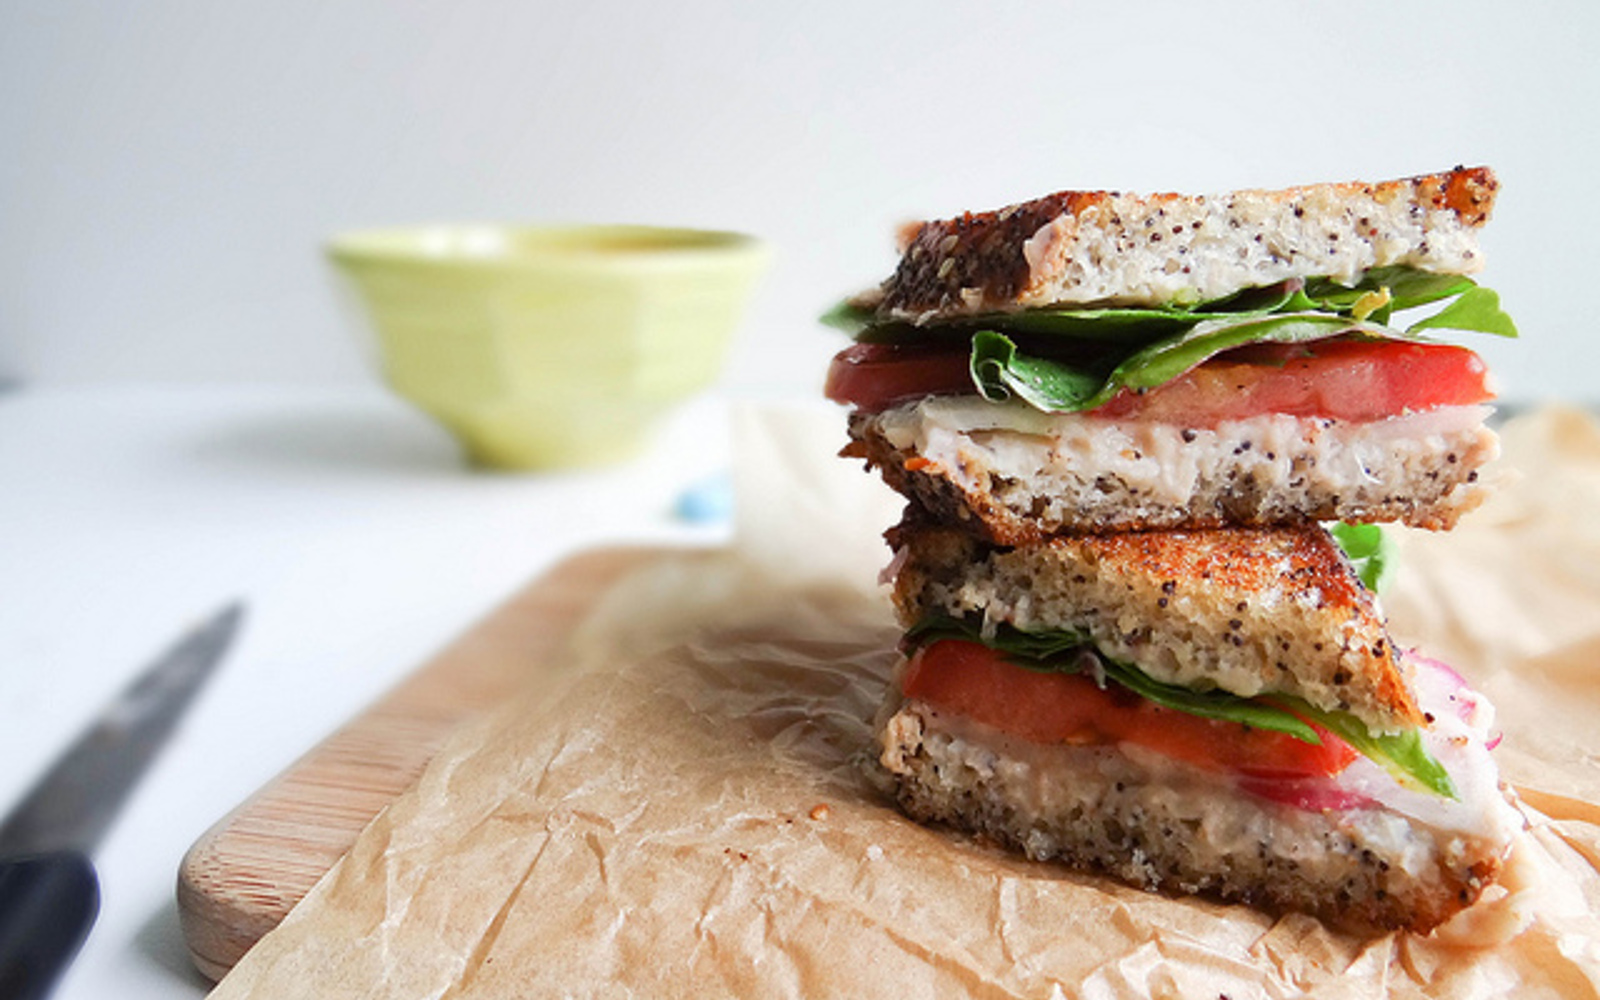 Swiss Chard and White Bean Grilled Sammie